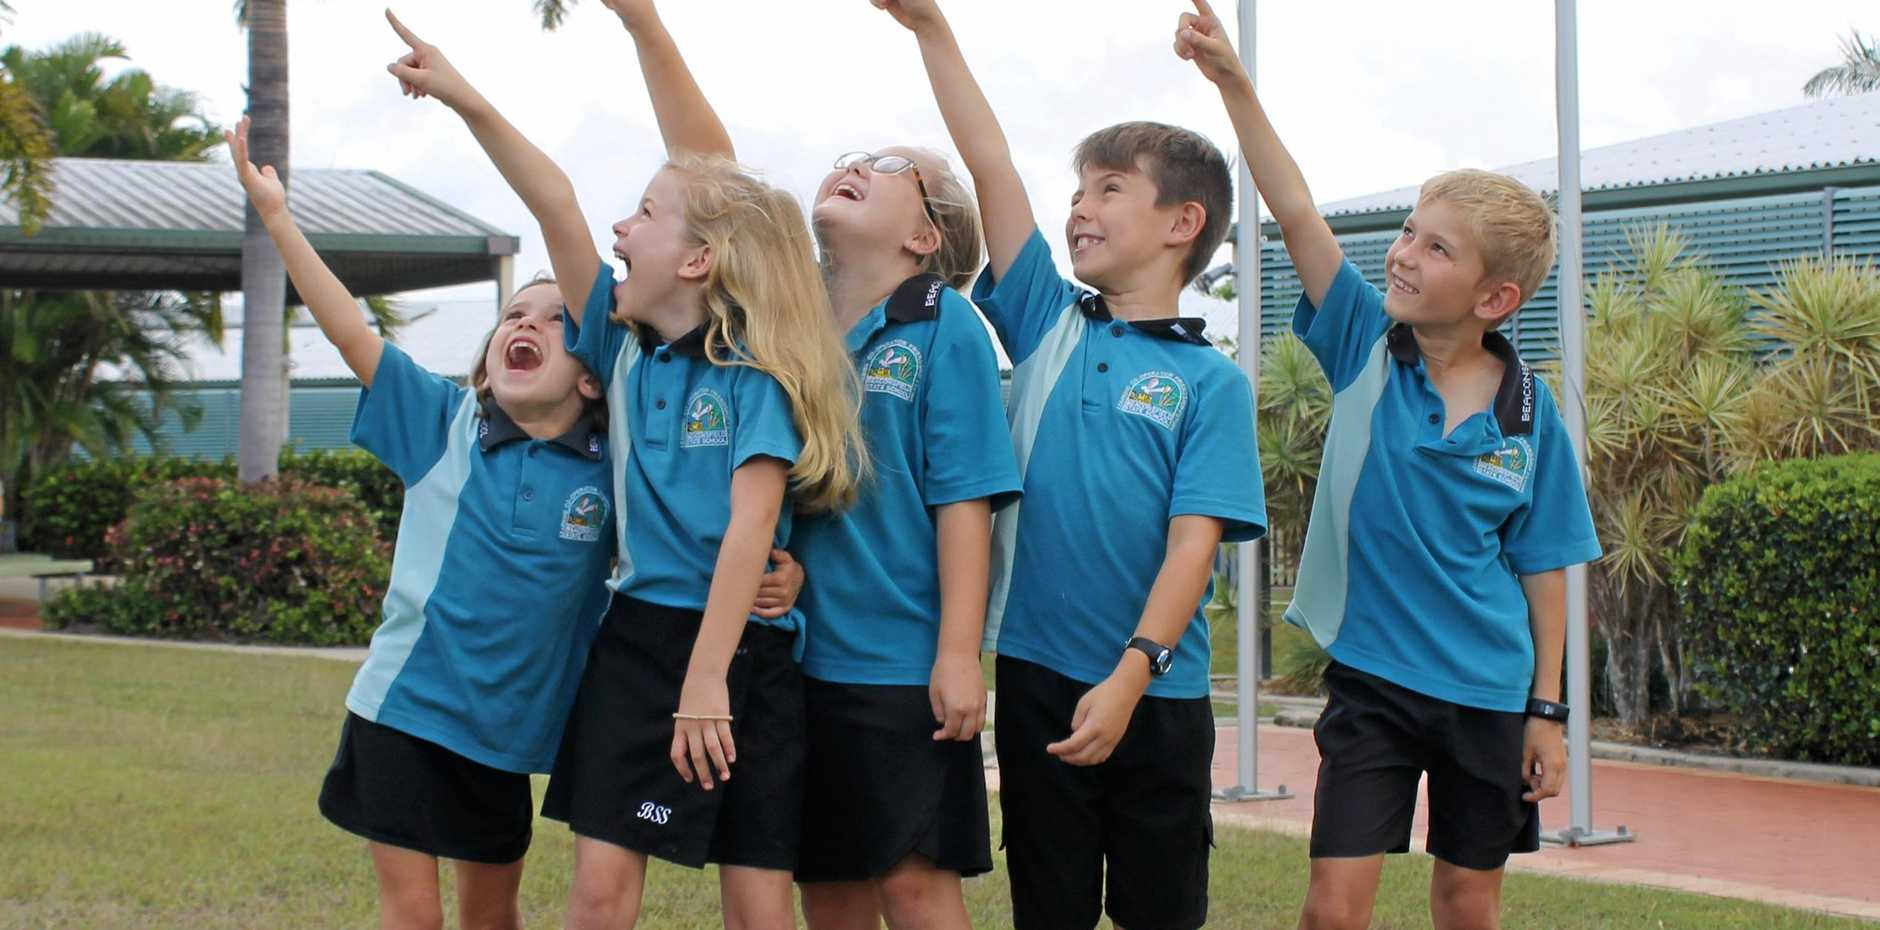 Beaconsfield State School students and potential future astronauts Kylah Sampson, 6, Olivia Laird, 7, Chloe Woods, 7, Albert Jackson, 9, and Riley Sampson, 8. They're looking forward to the hook-up with the International Space Station, which will be orbiting about 350km above Earth.